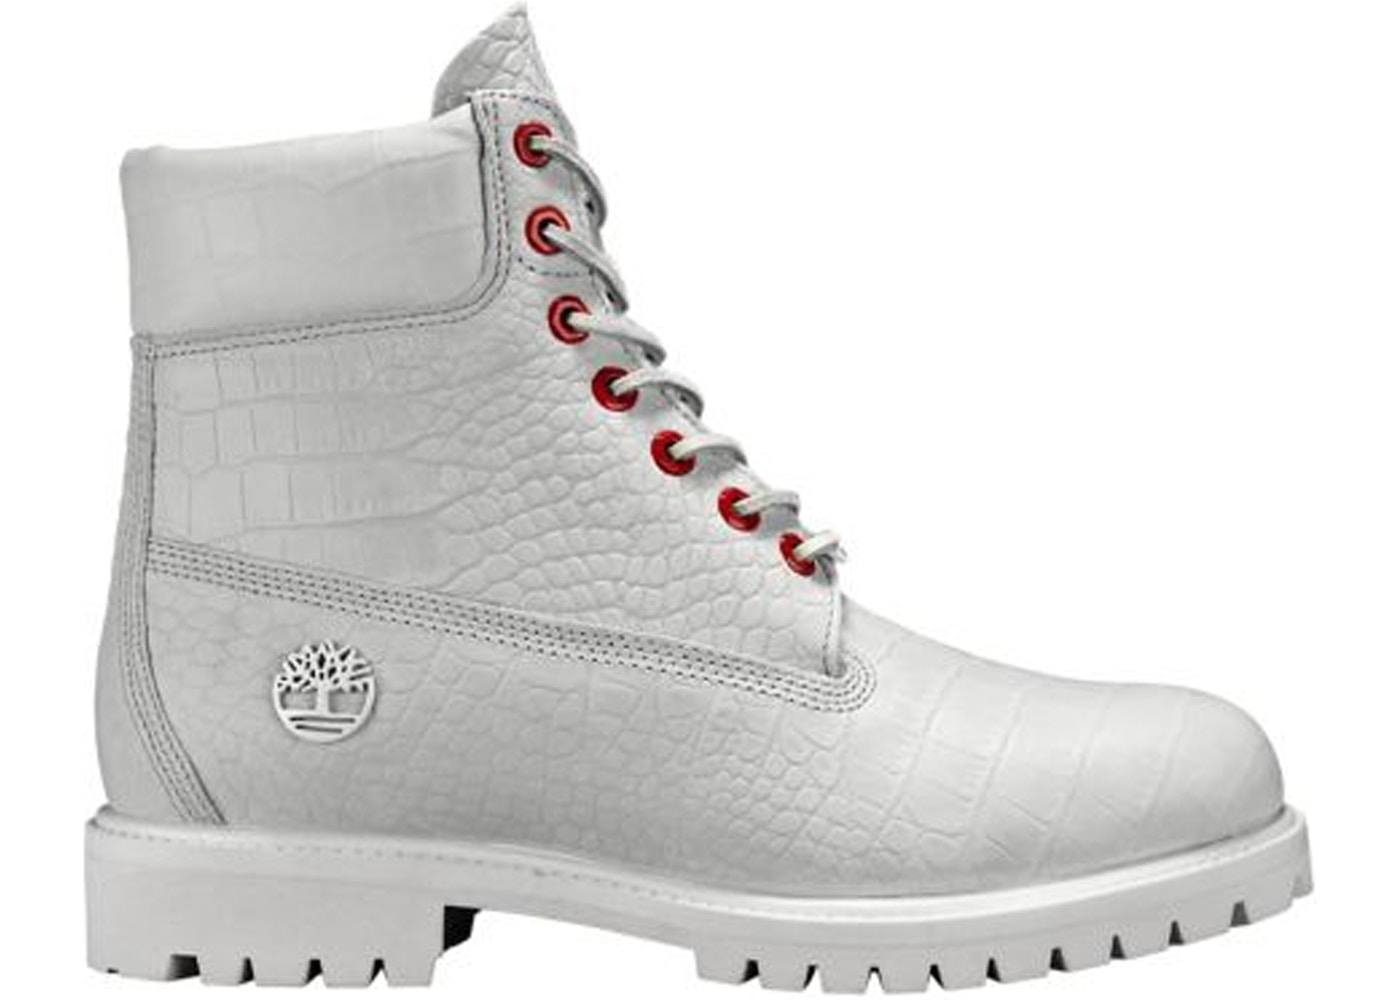 where can i buy white timberland boots